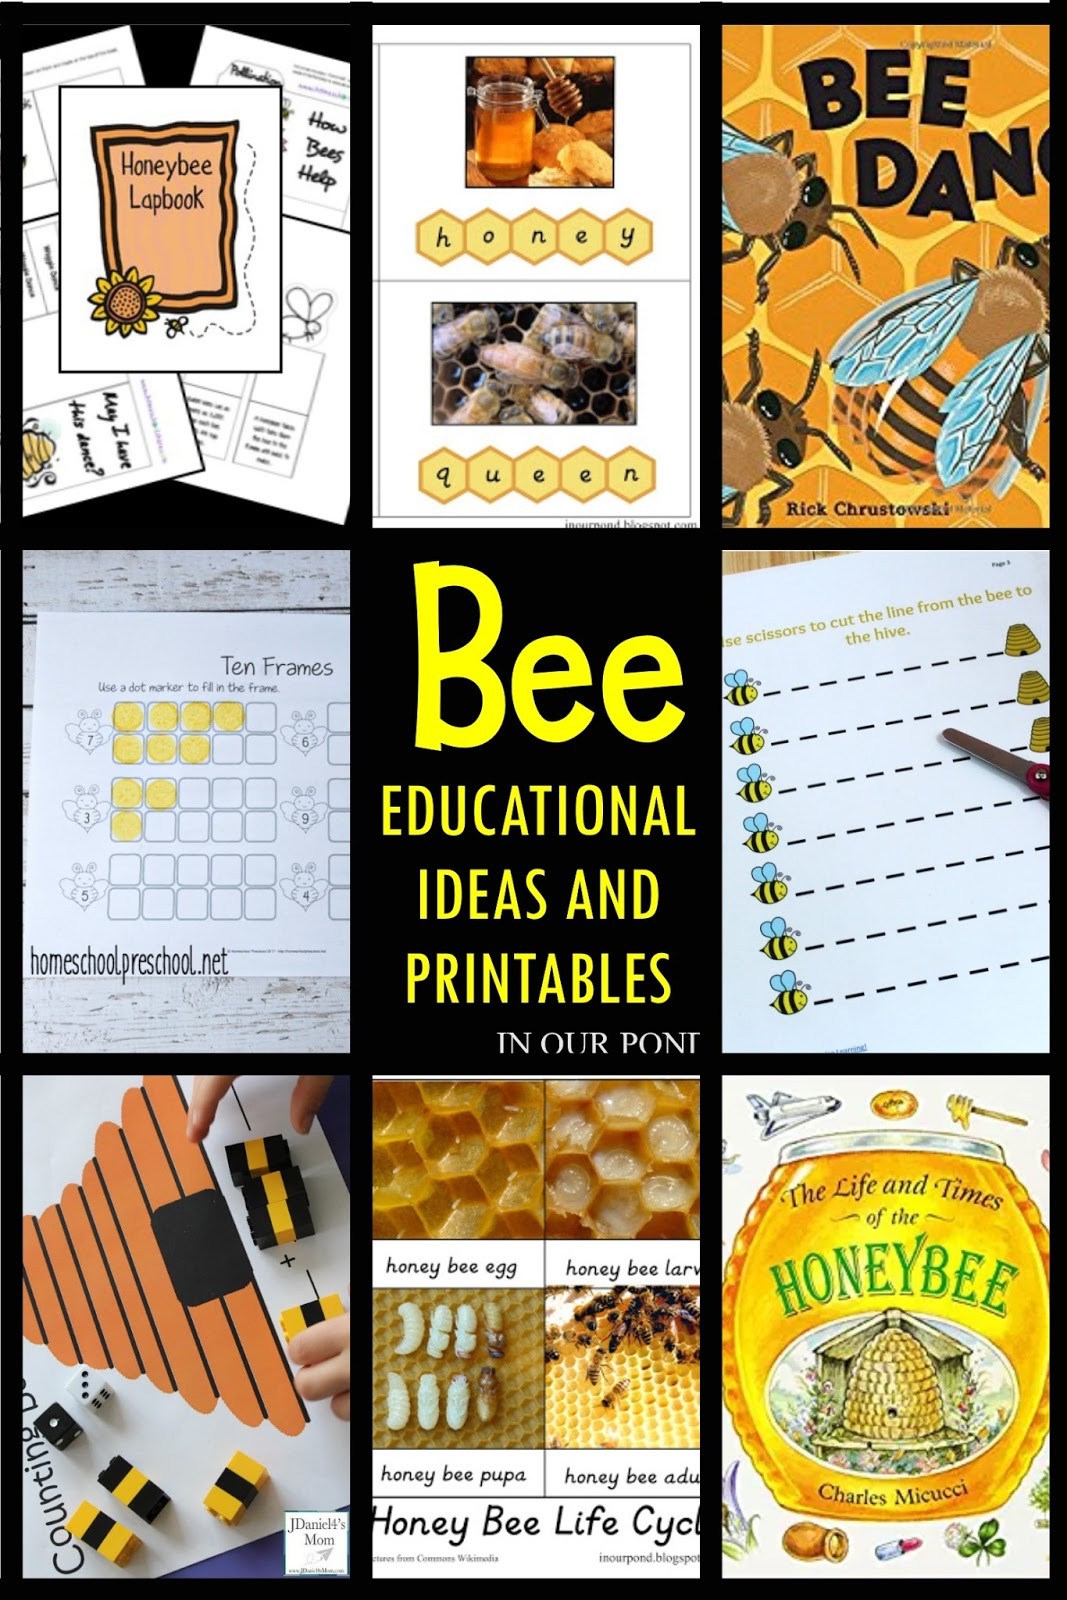 A Celebration Of Bees Ideas And Printables For Kids